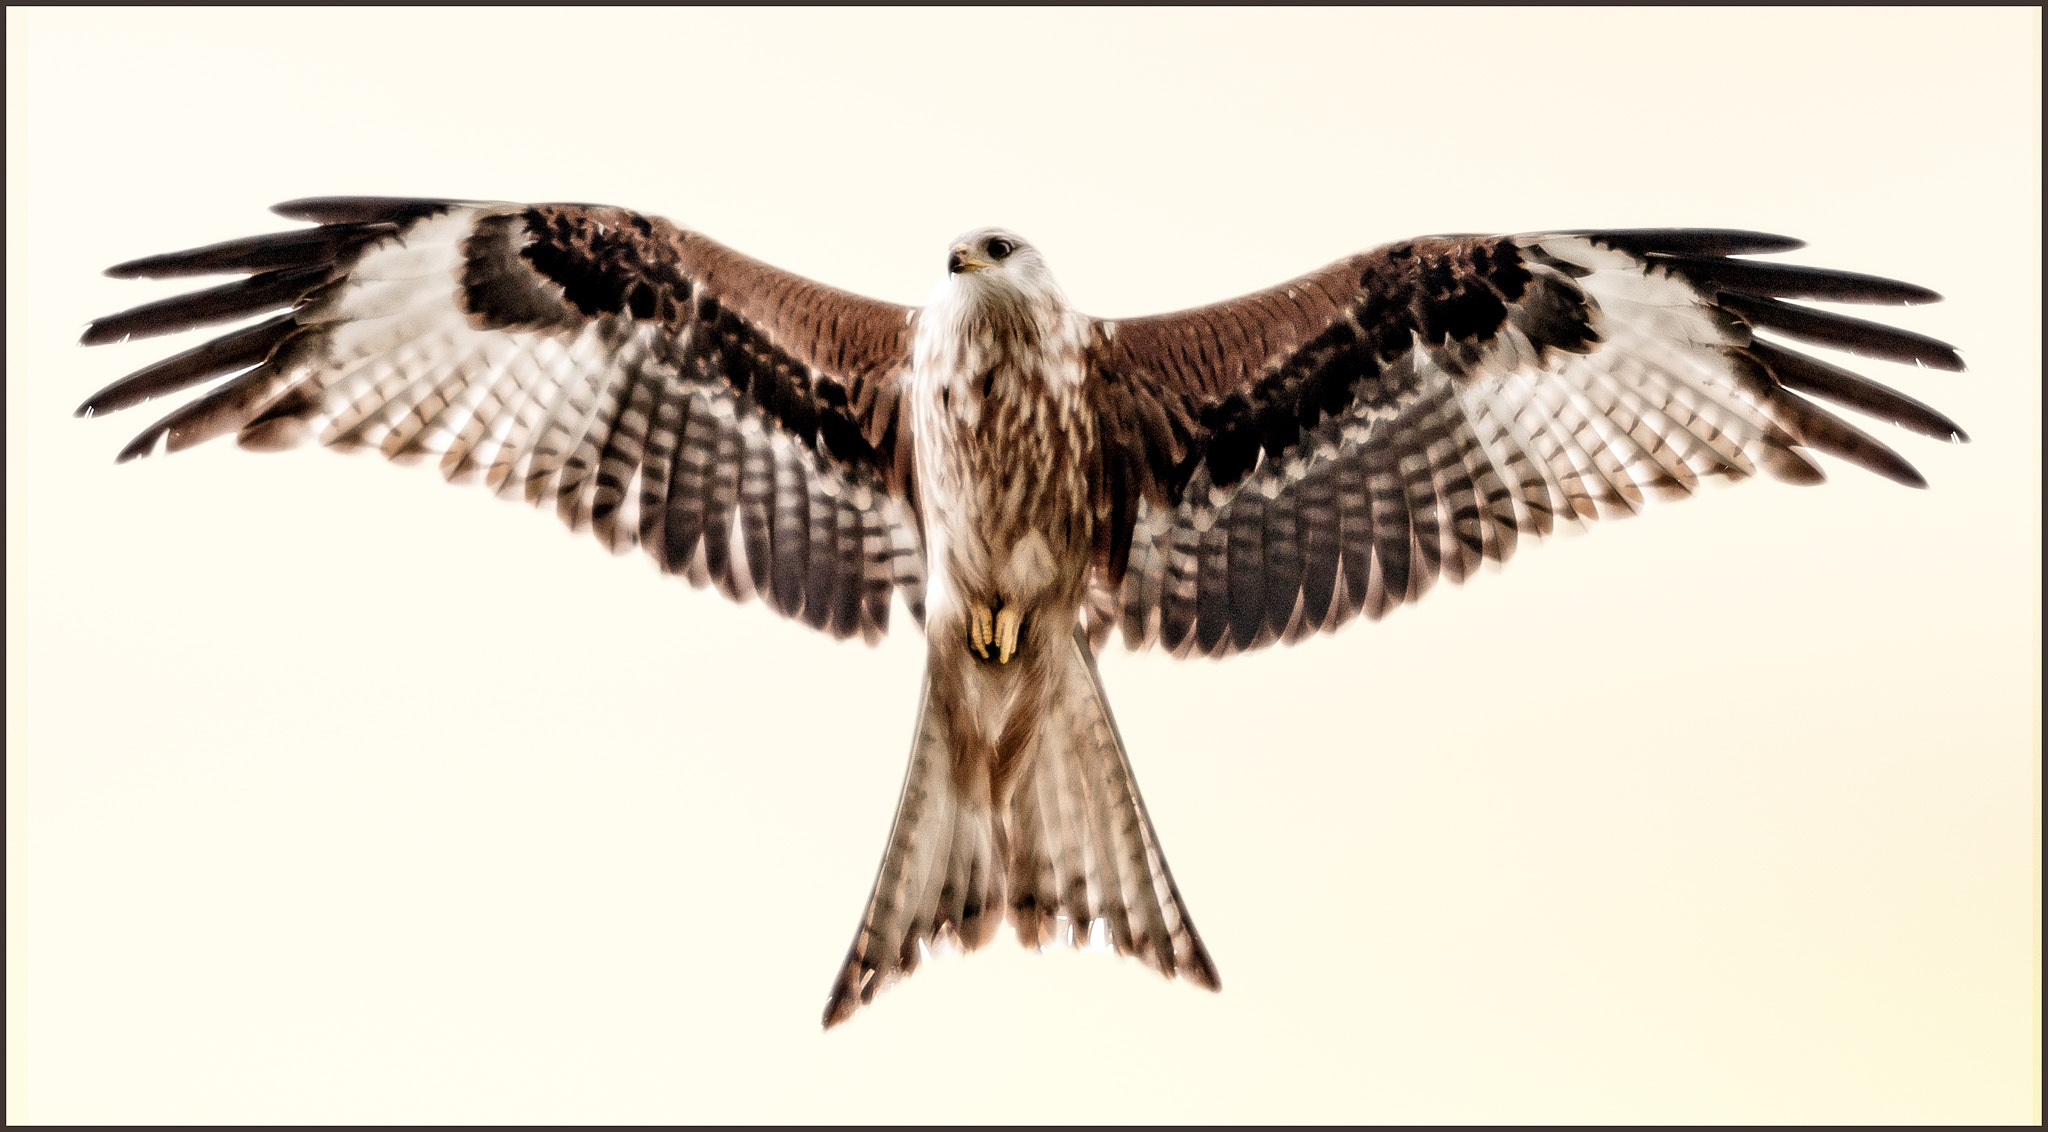 Arty farty Red Kite by scrawcreations  (Stephen)